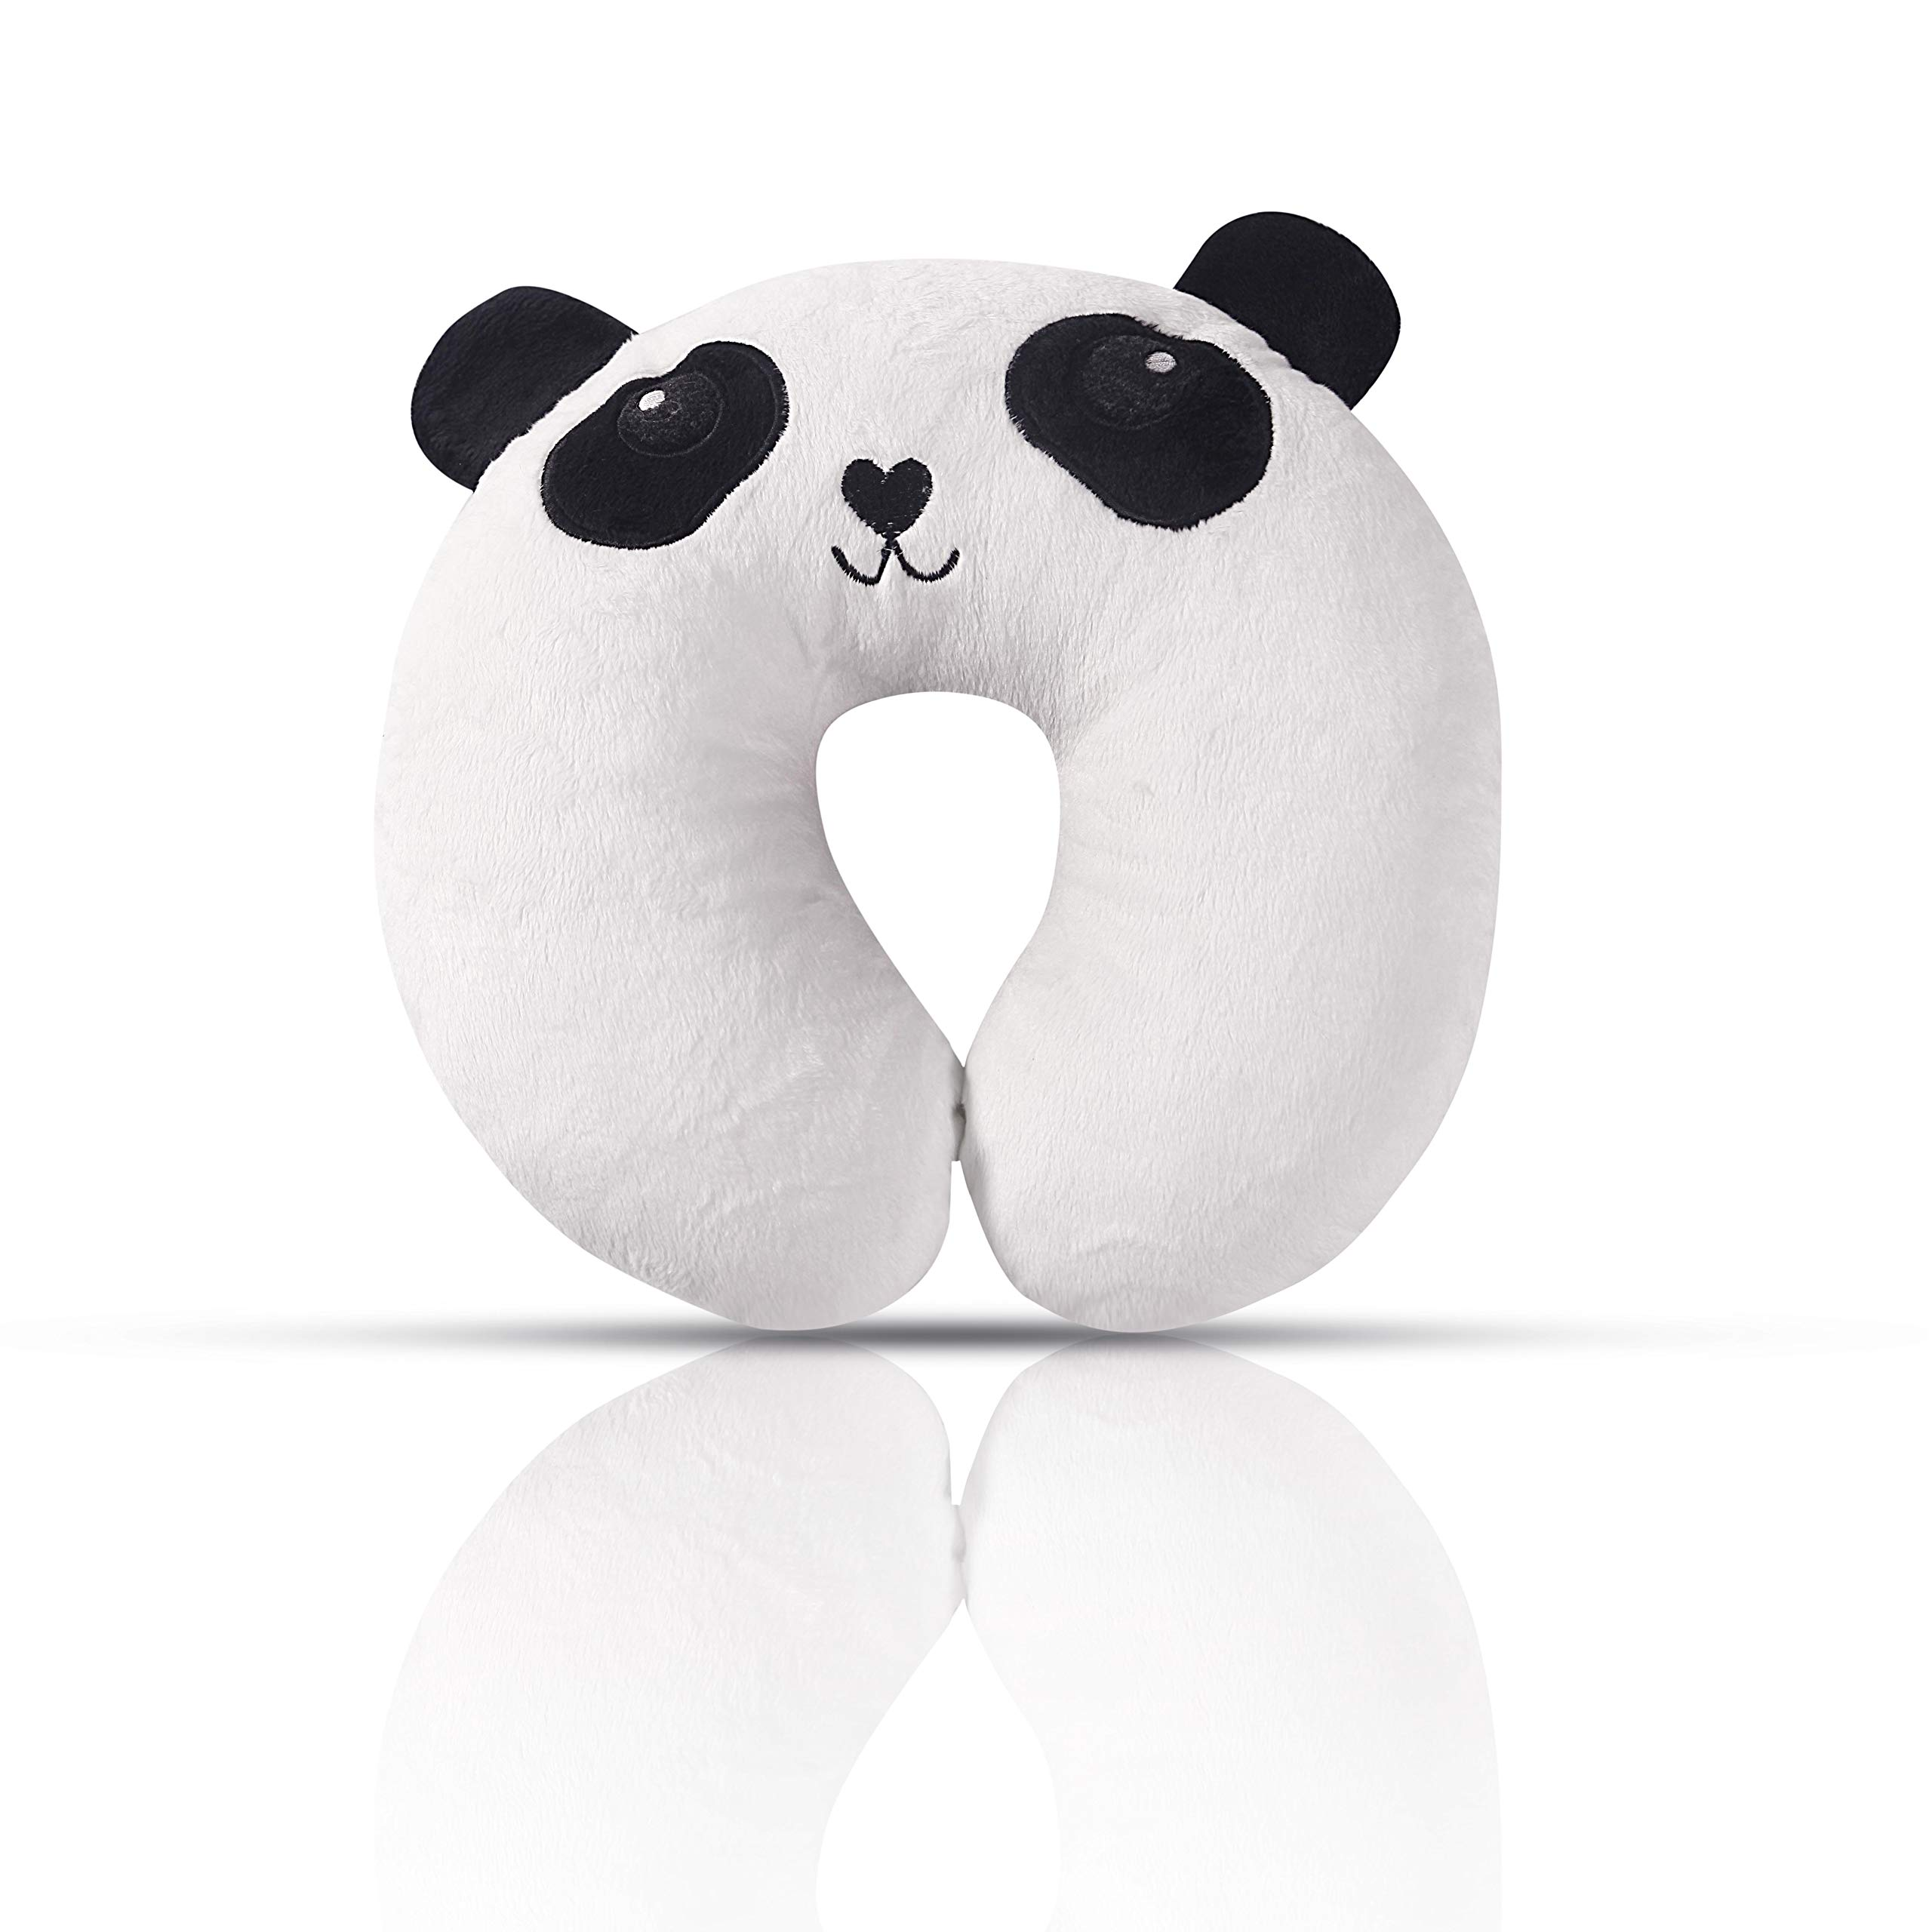 U-Shape Soft Kids Panda Travel Neck Pillow | Toddler Car Seat Neck Support Pillow | Cute 3D Panda Embroidery | Comfortable in Any Sitting Position for Airplane, Car, Train,Bus | Perfect Infants Gifts